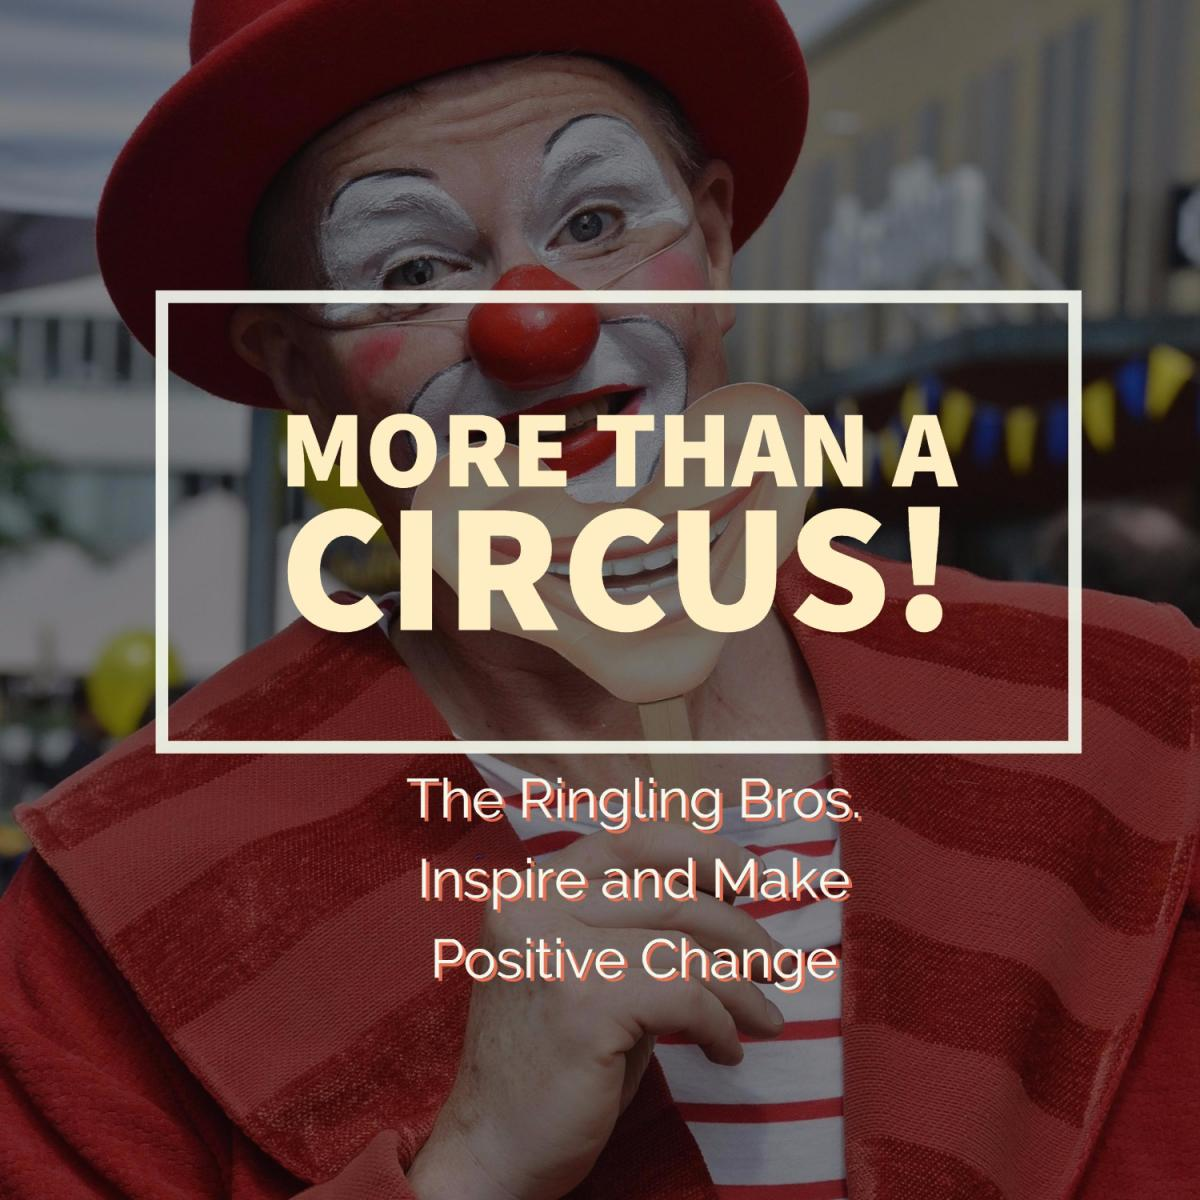 More than a circus: The Ringling Bros. Inspire and Make Positive Change